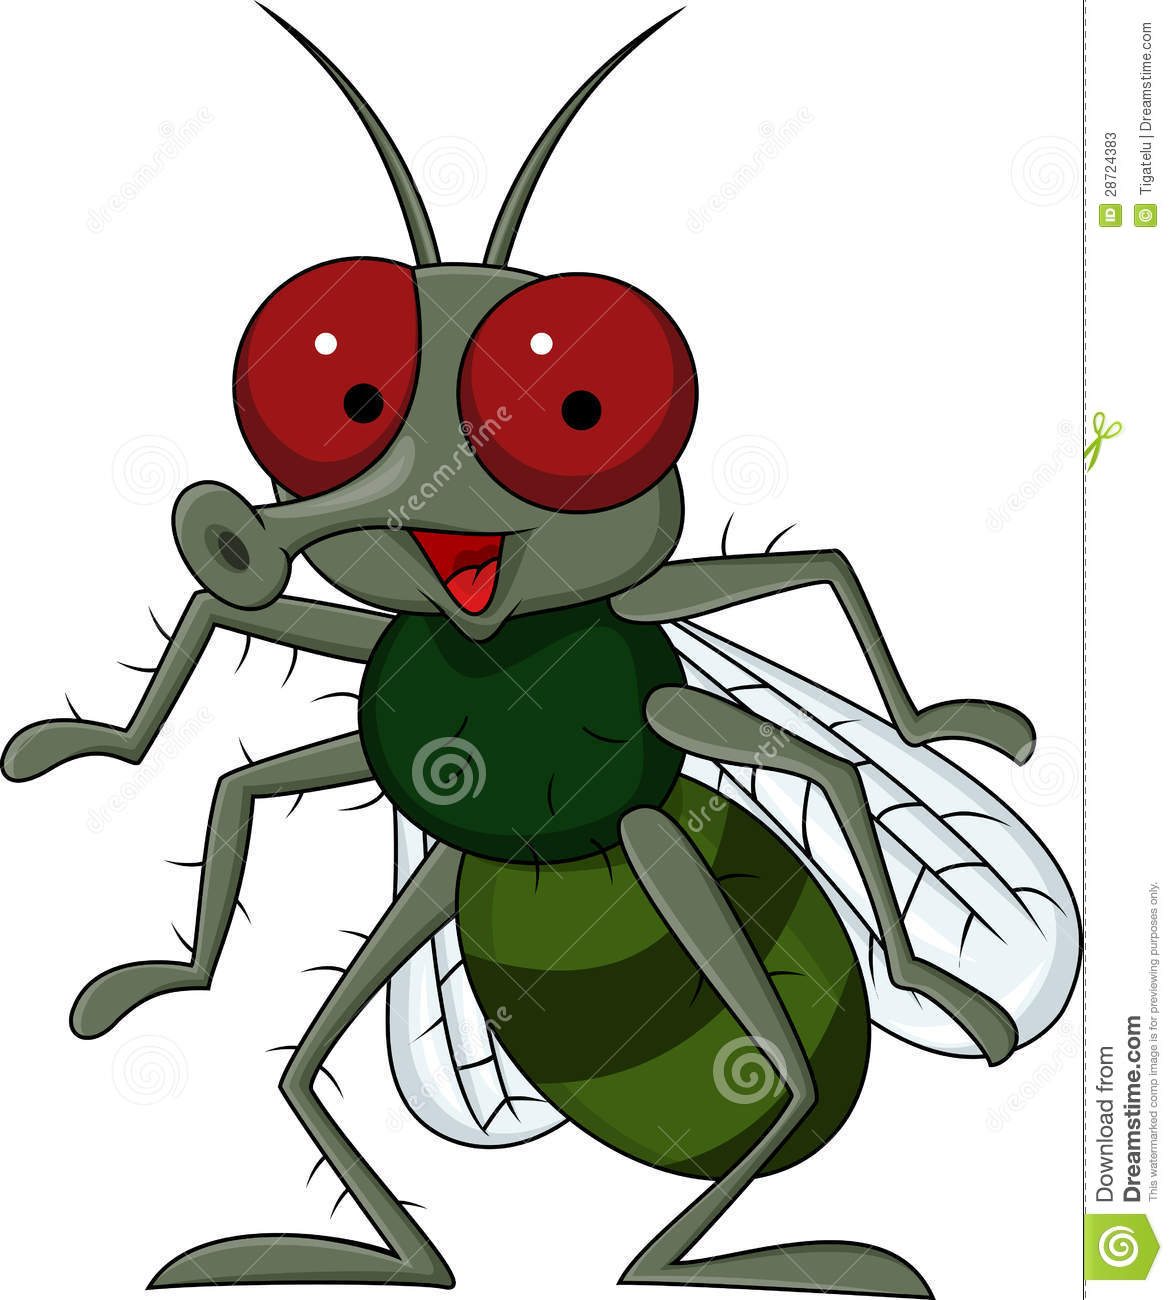 fruit fly clipart - photo #22